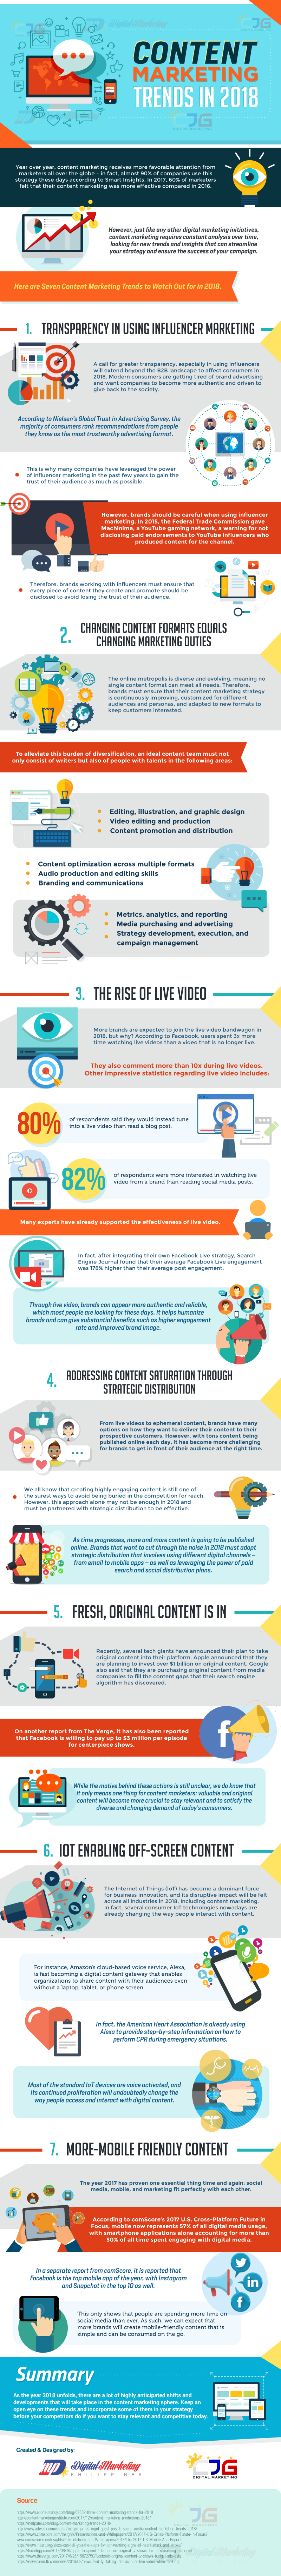 Content Marketing Trends in 2018 - #infographic